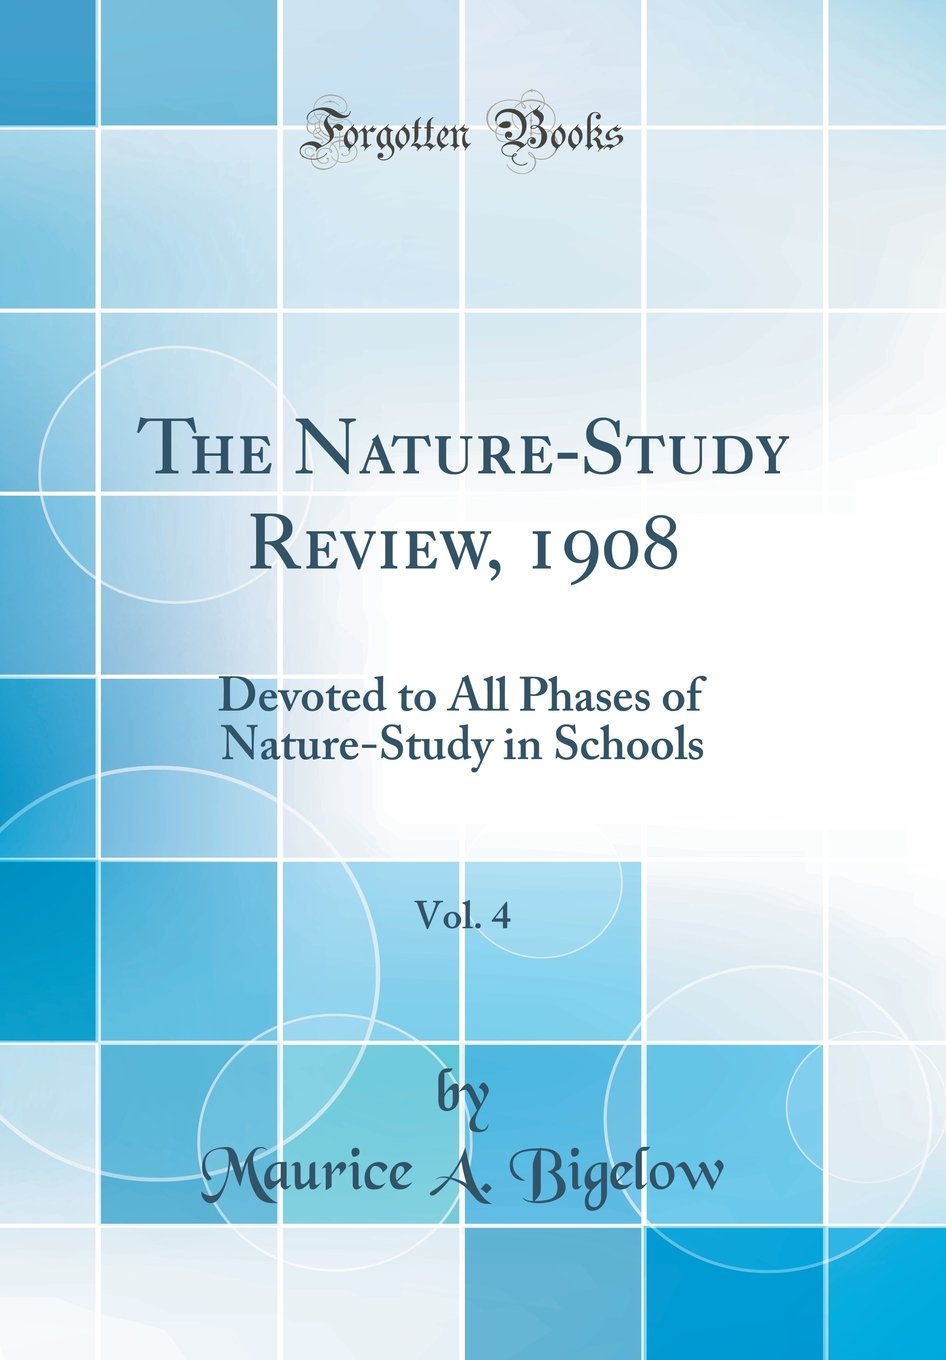 The Nature-Study Review, 1908, Vol. 4: Devoted to All Phases of Nature-Study in Schools (Classic Reprint) PDF